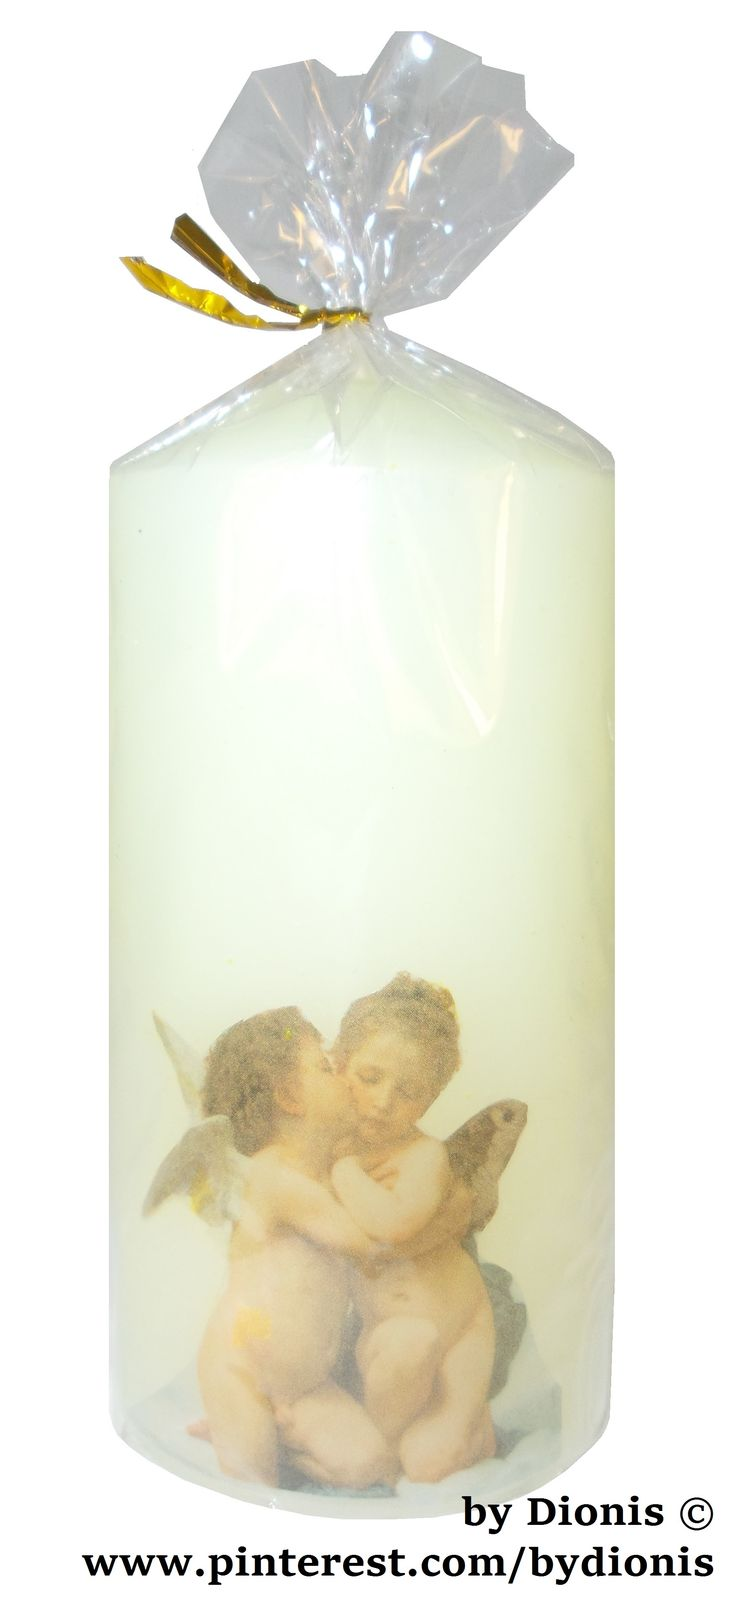 Свеча колонна 6х12 см. Ангелы #candles #kerzen #bougie #candela #velas #lampion #angel #bydionis #decor #bydionis